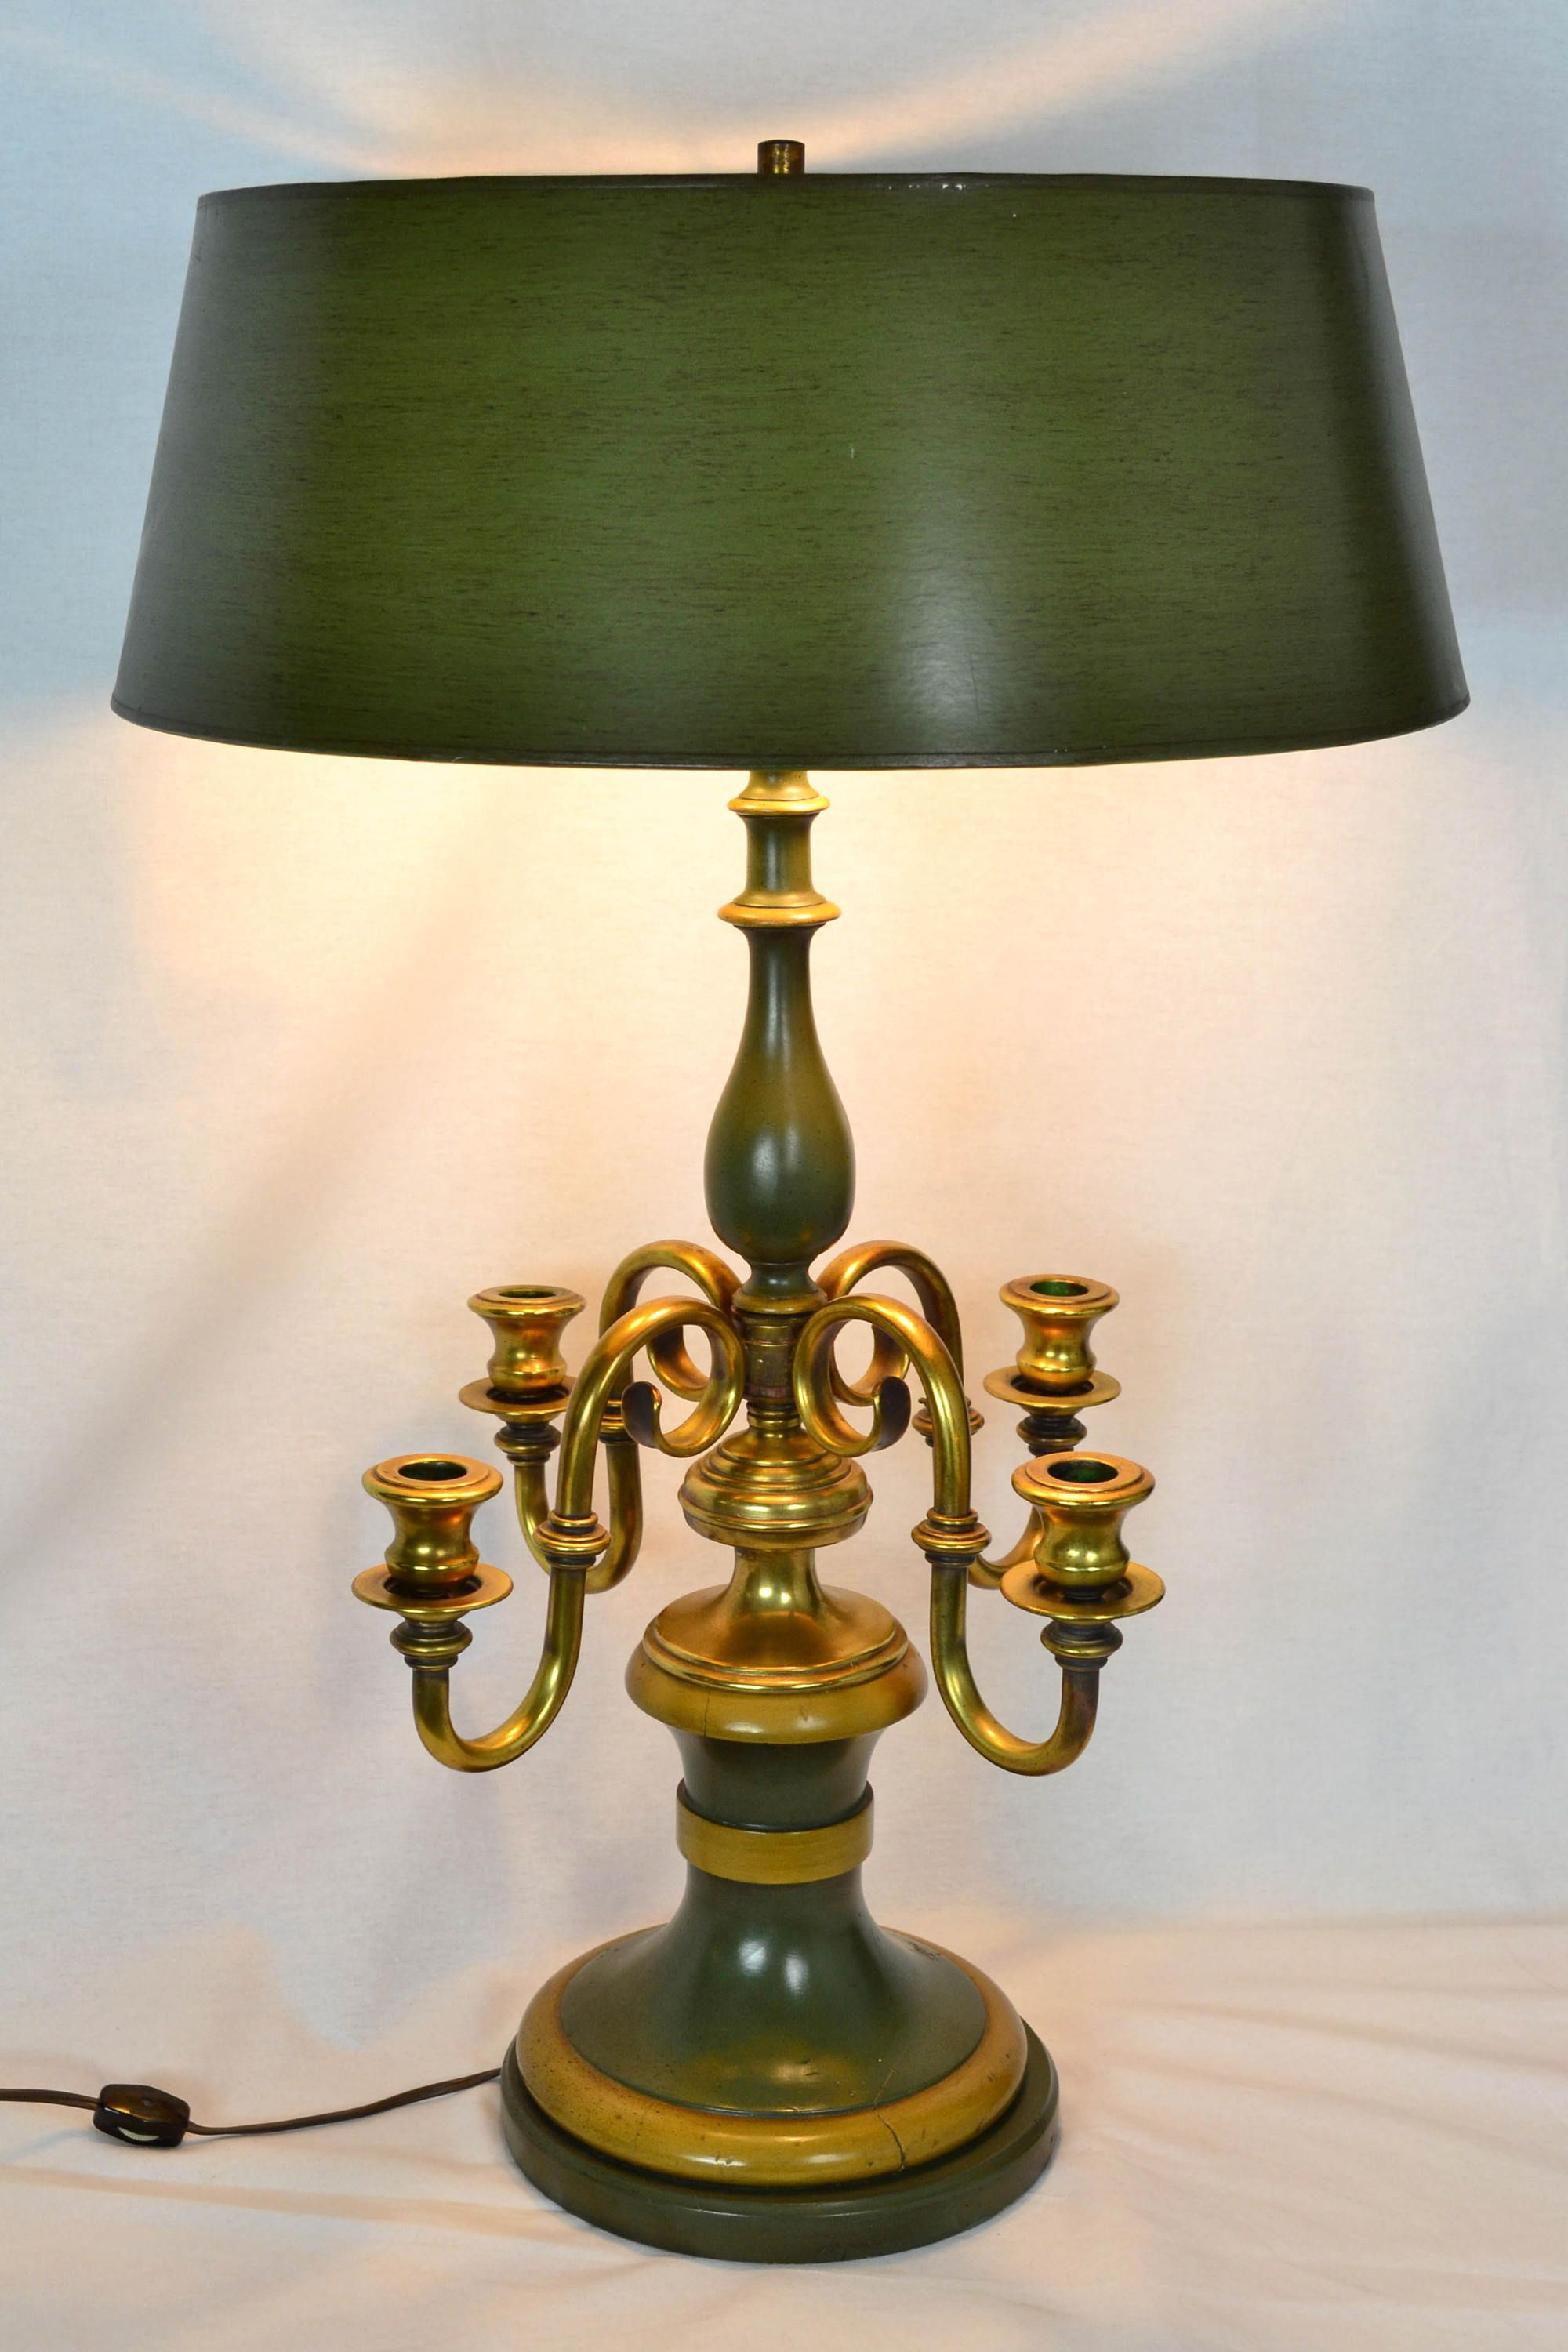 formerly now pair selling at vintage lamps table couch for these or s great contessa lamp were contessashome a etsy category console the com acquisitions bedside on behind restored